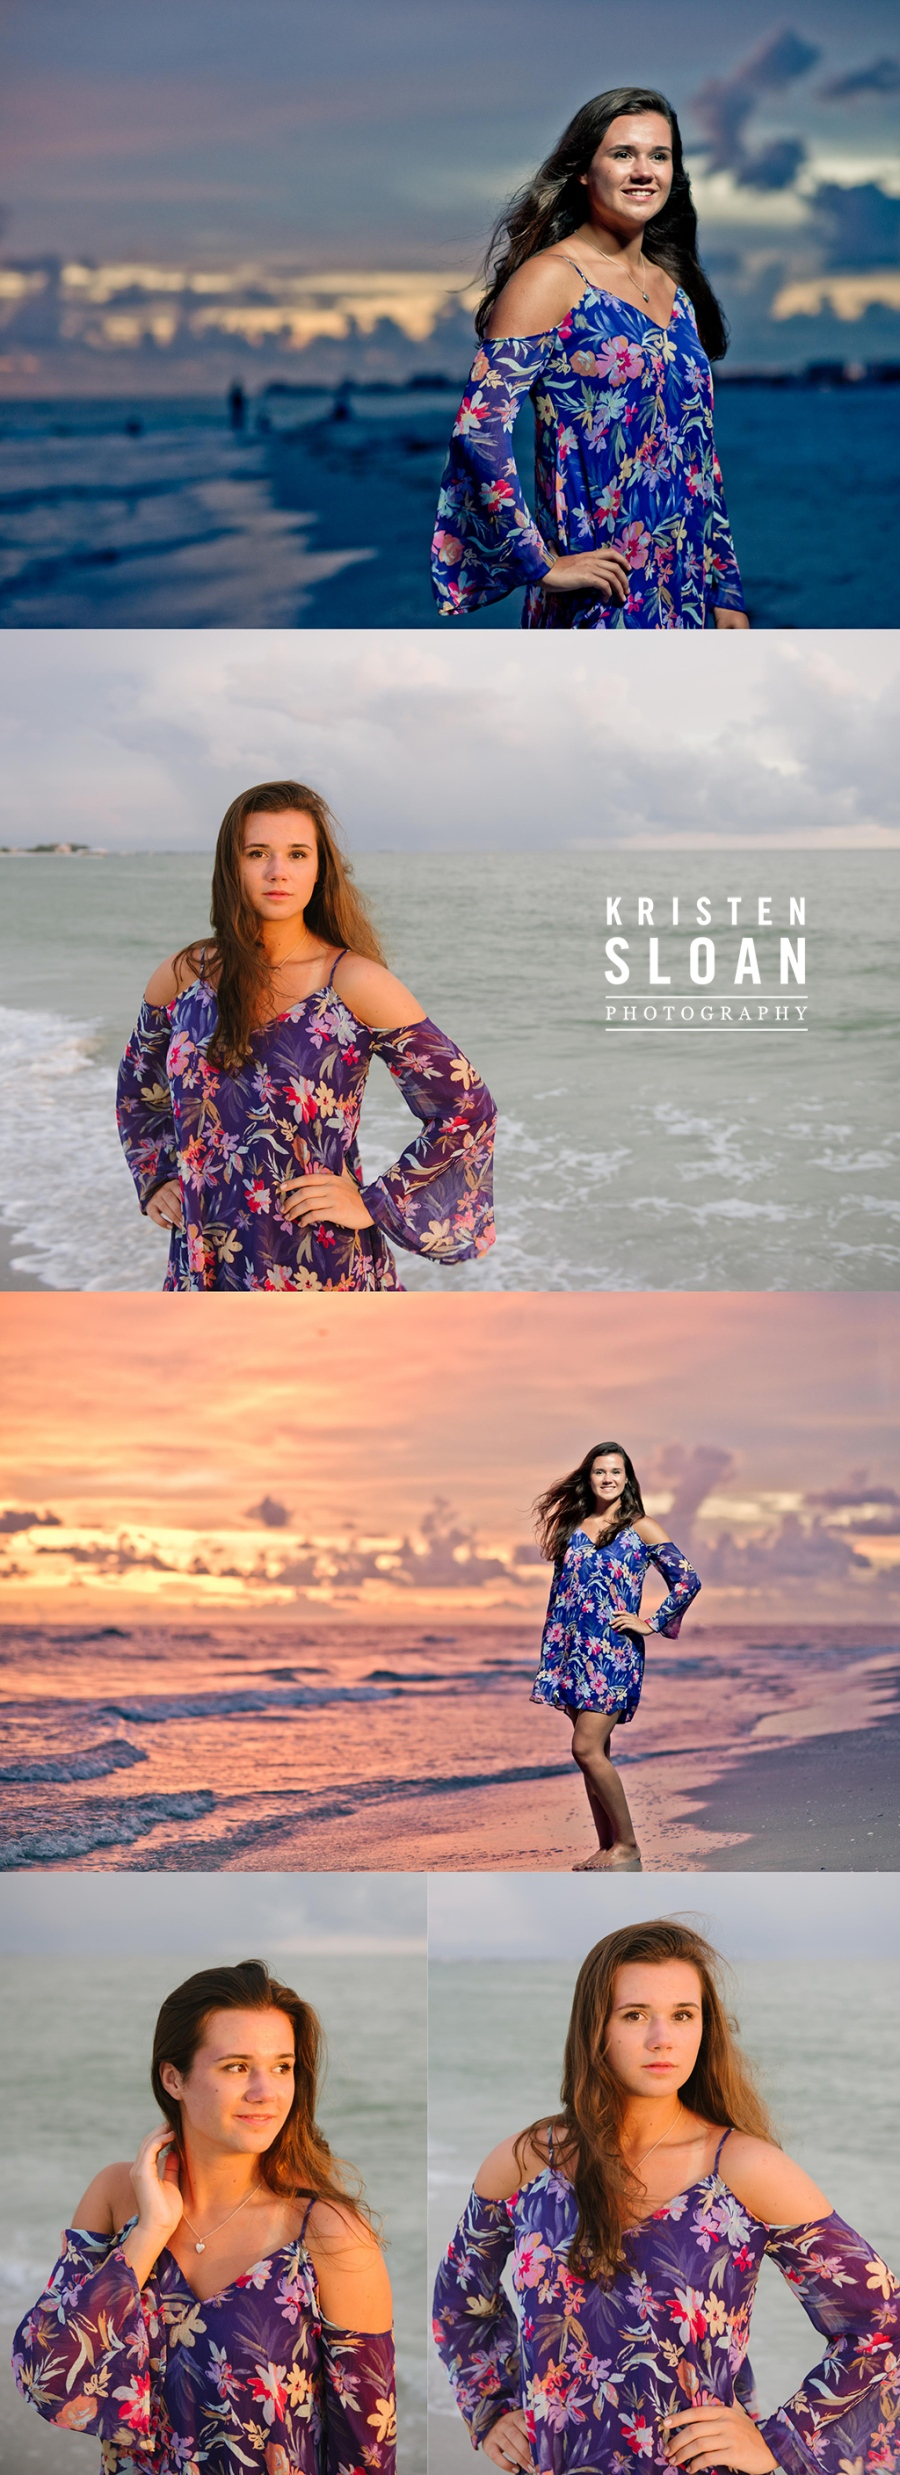 Sunset Senior Portraits at Treasure Island FL by Kristen Sloan